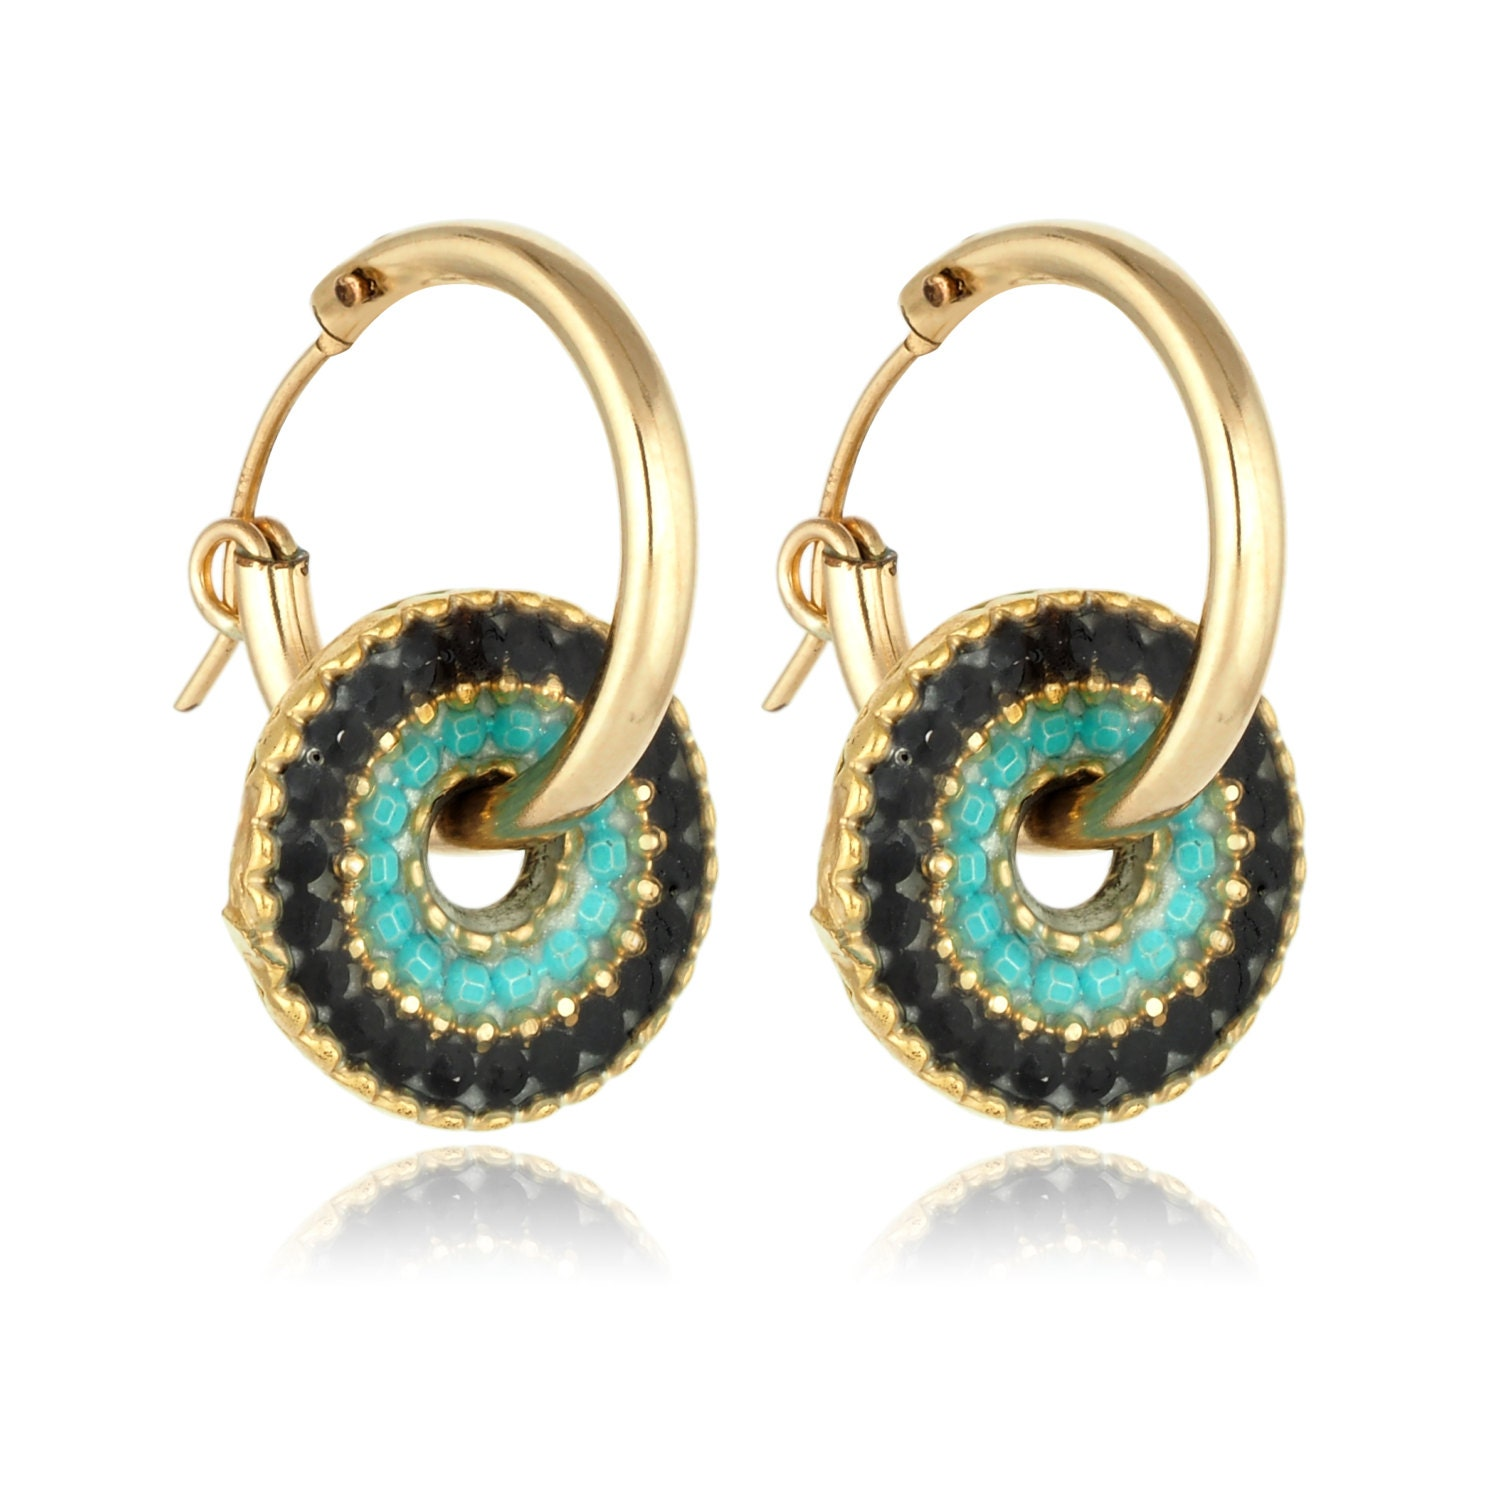 mm and sterling set all shop hoop earrings with interchangeable hoops silver of pairs dangles